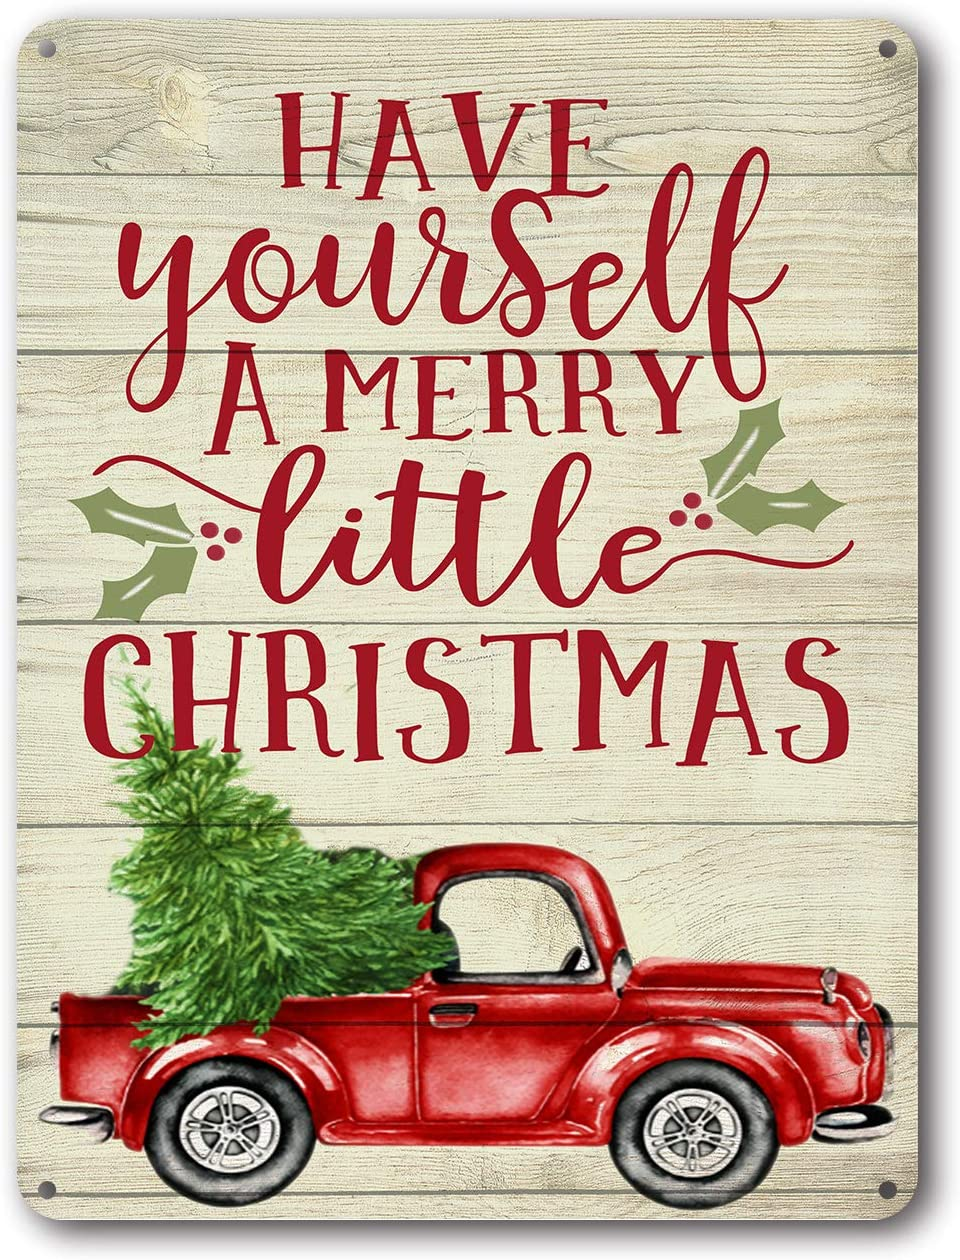 Goutoports Christmas Decor Signs Farmhouse Decorative Red Truck Vintage Wall Decorations - Have Yourself a Merry Little Christmas 7.9x11.8 Inch